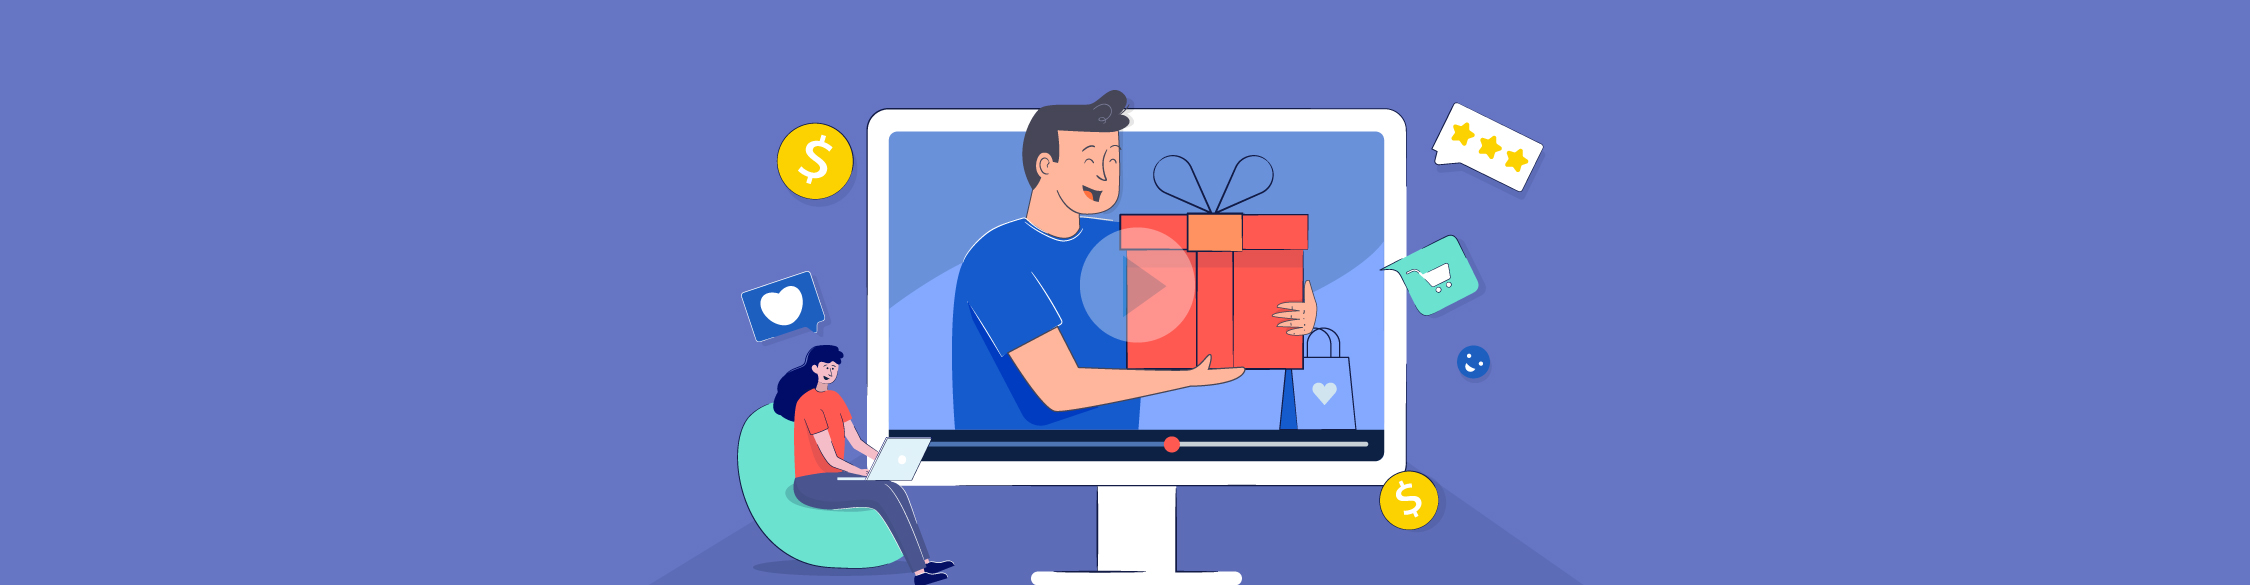 How to Create a Product Video Your Customers Will Love